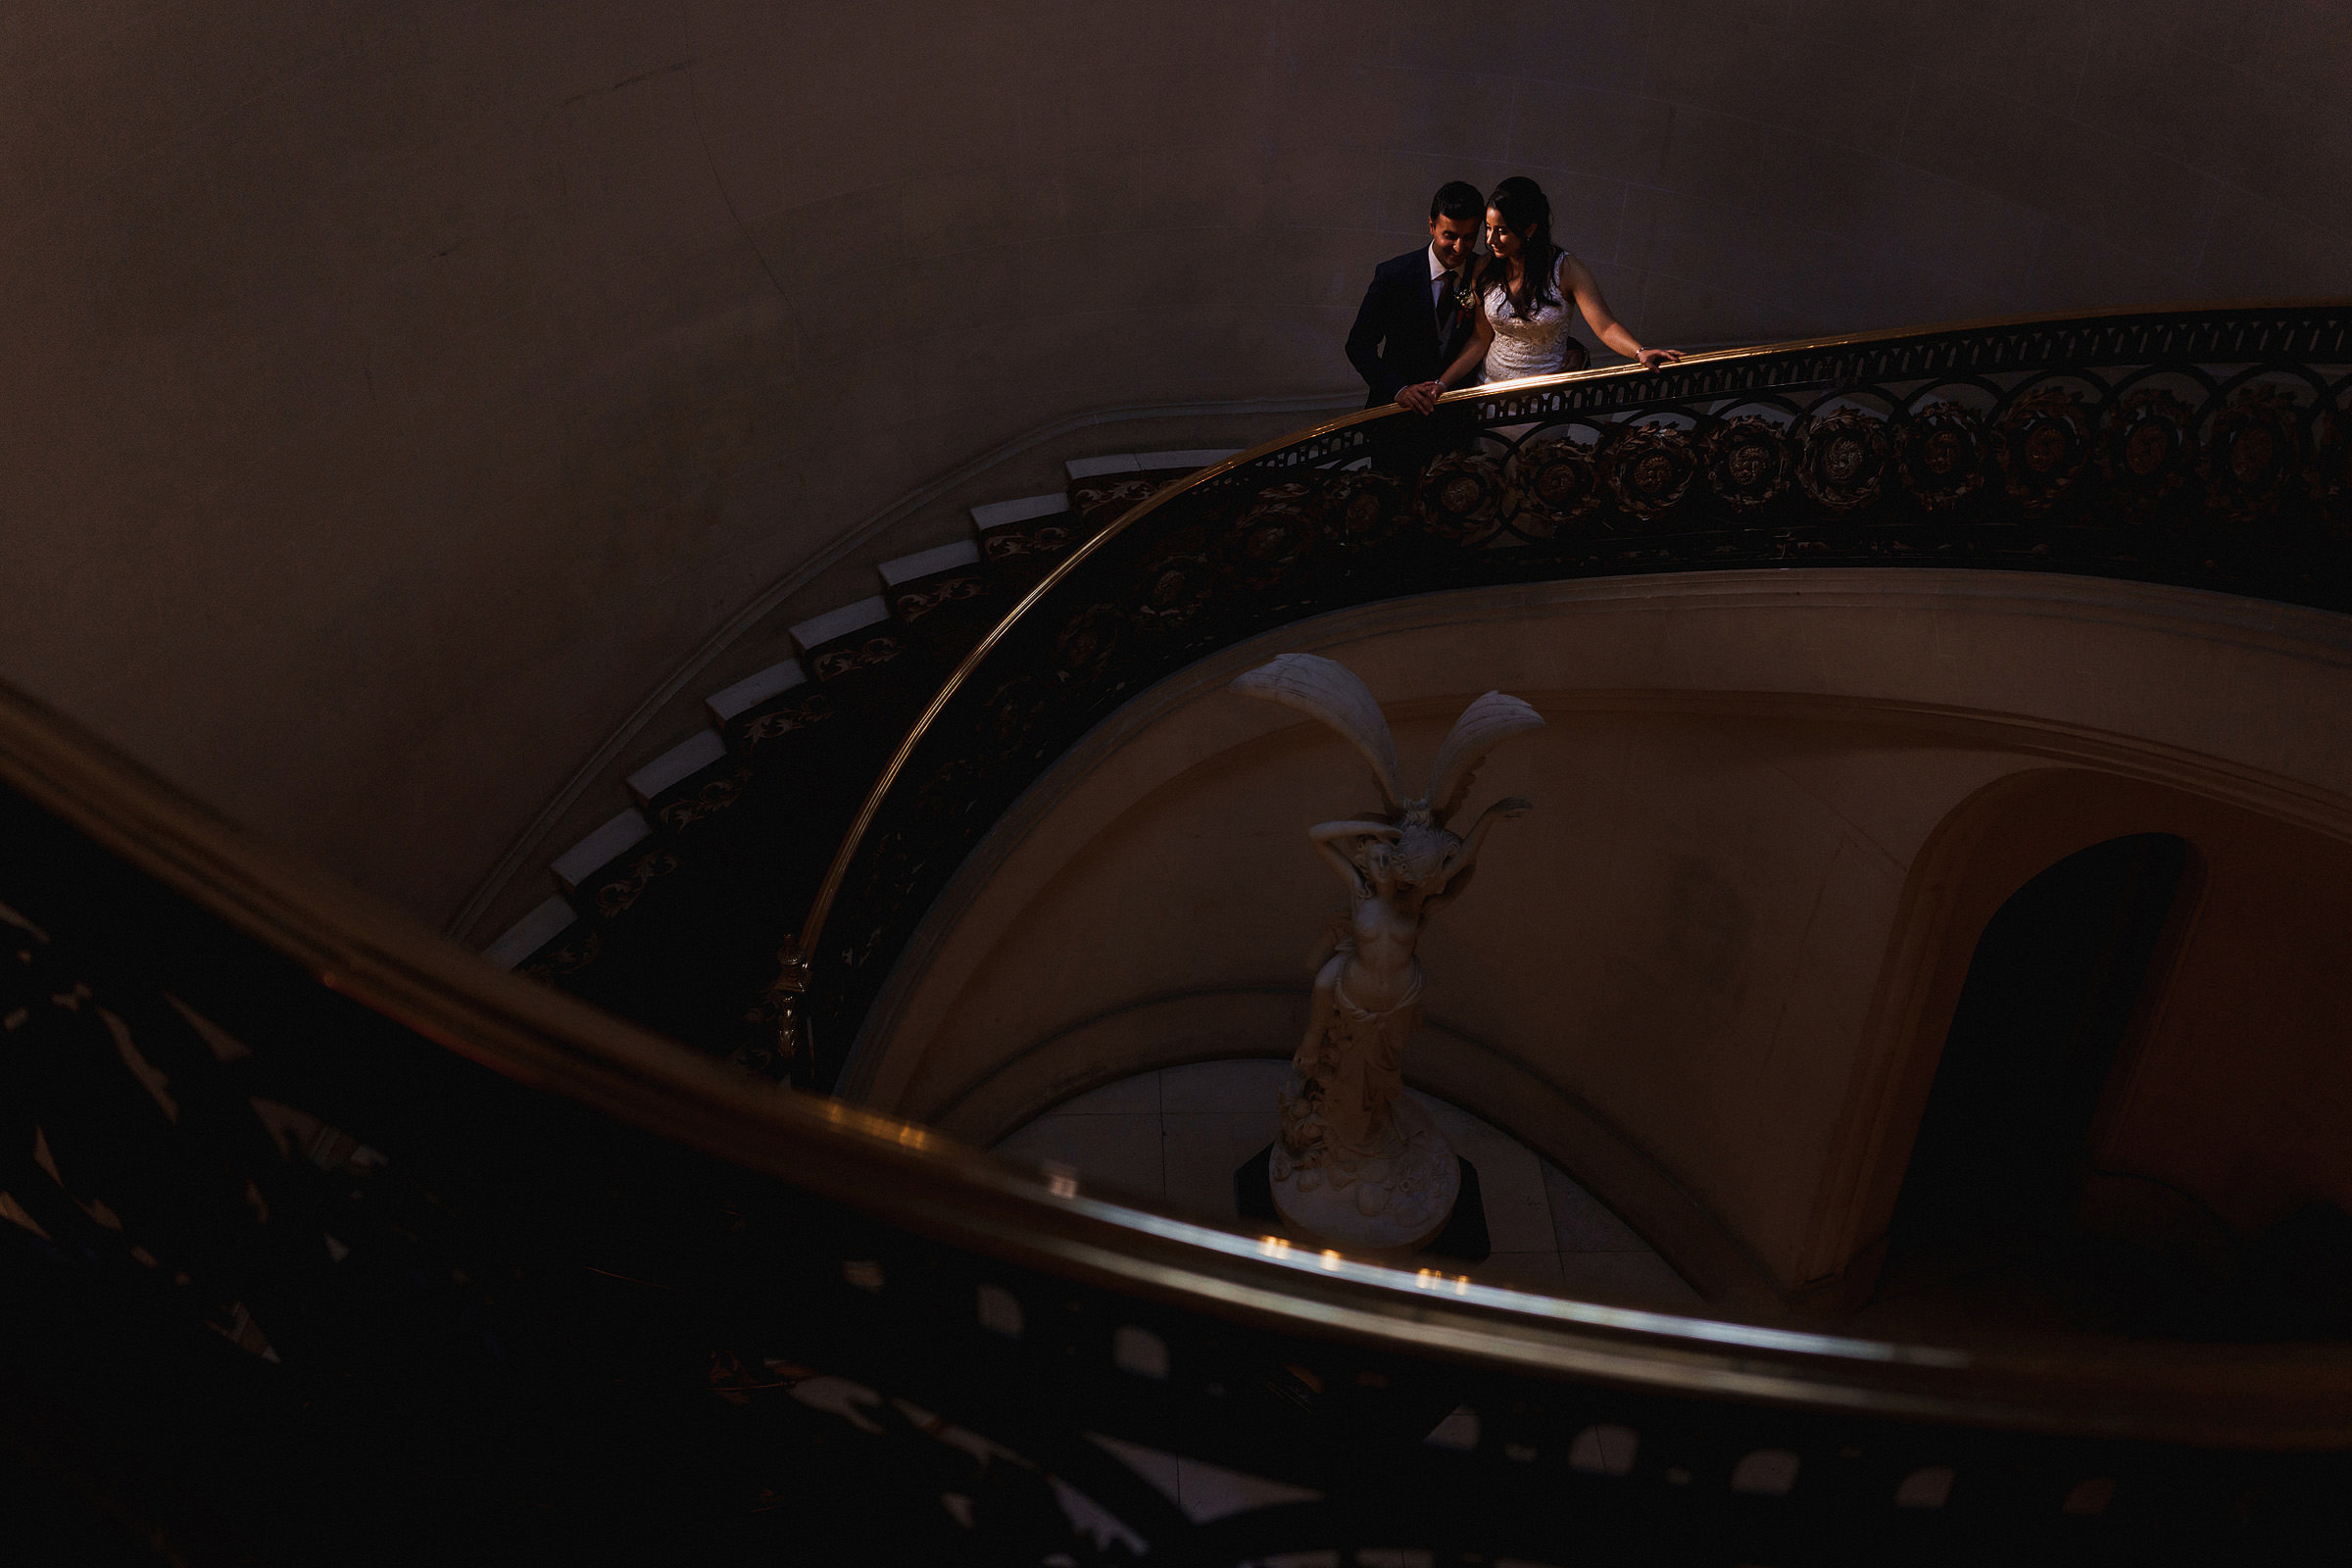 Couple on sweeping spiral staircase - photo by f5 Photography